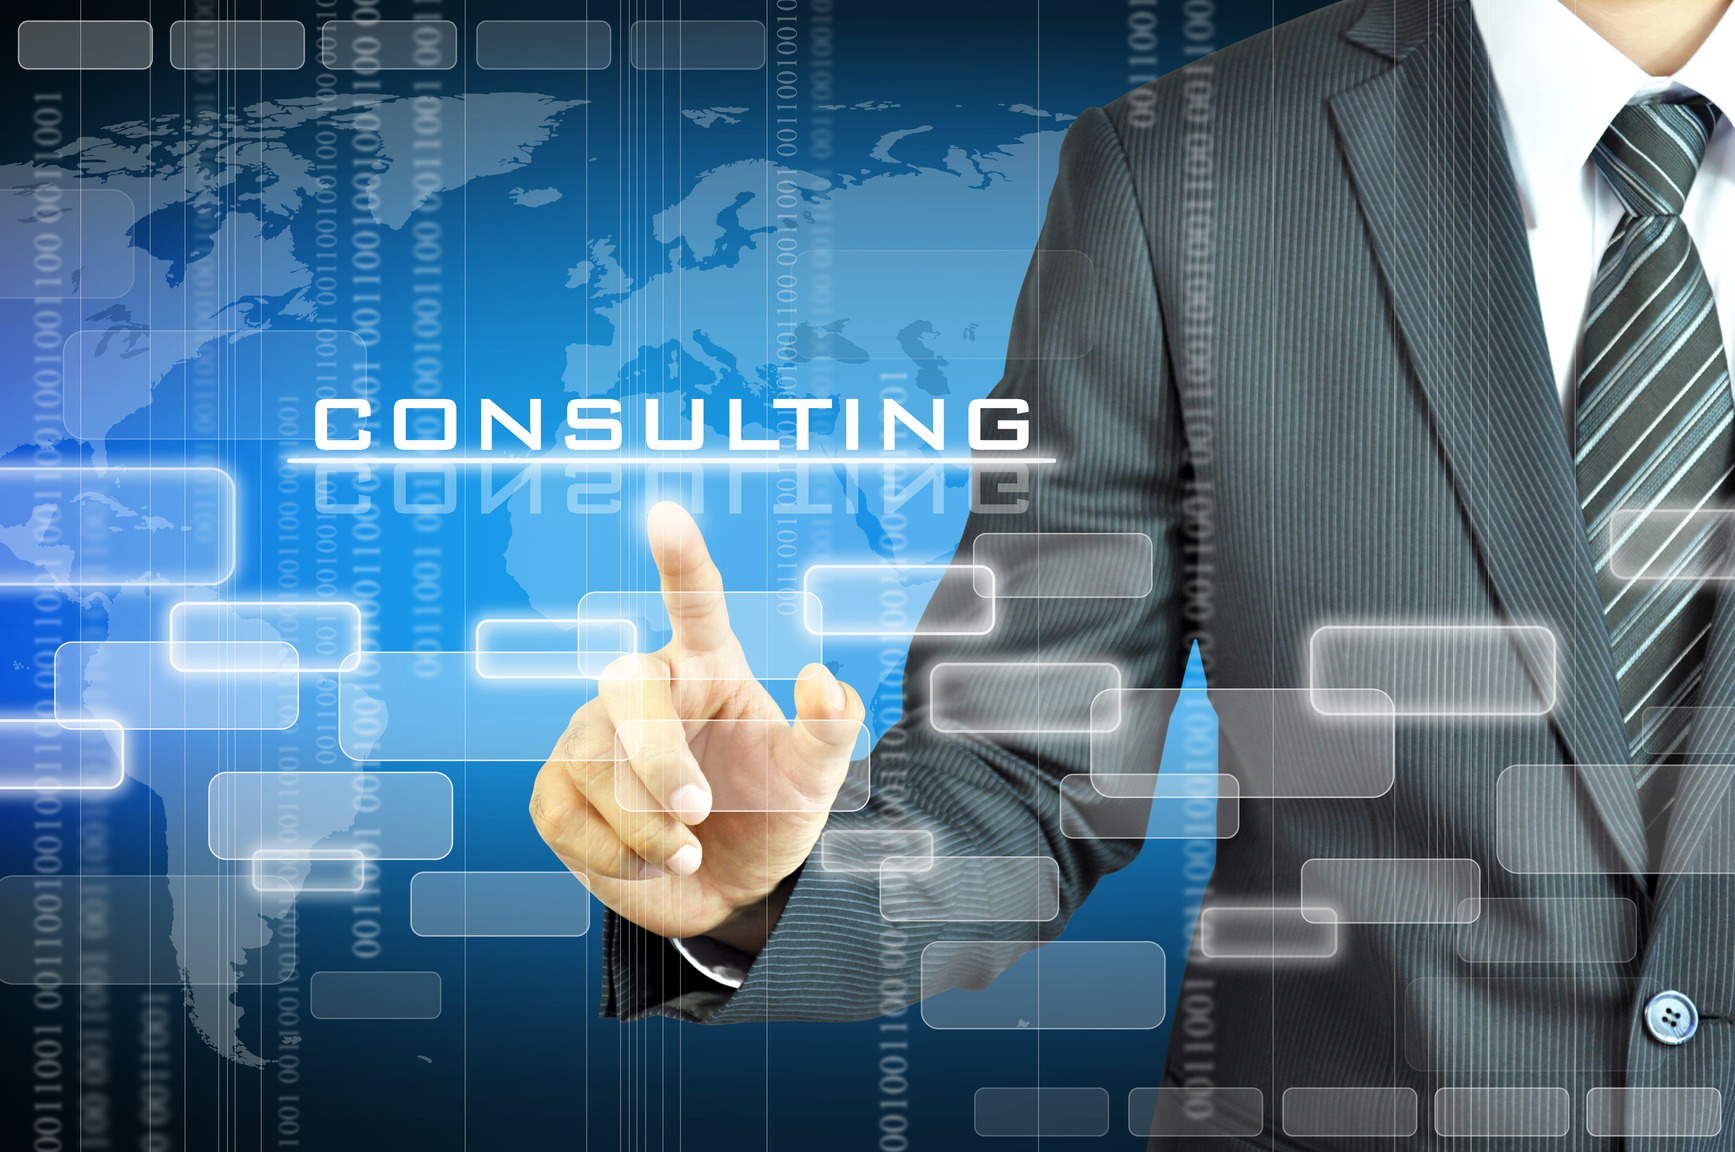 It Consulting - Business Consultant (#1130390) - HD Wallpaper & Backgrounds  Download